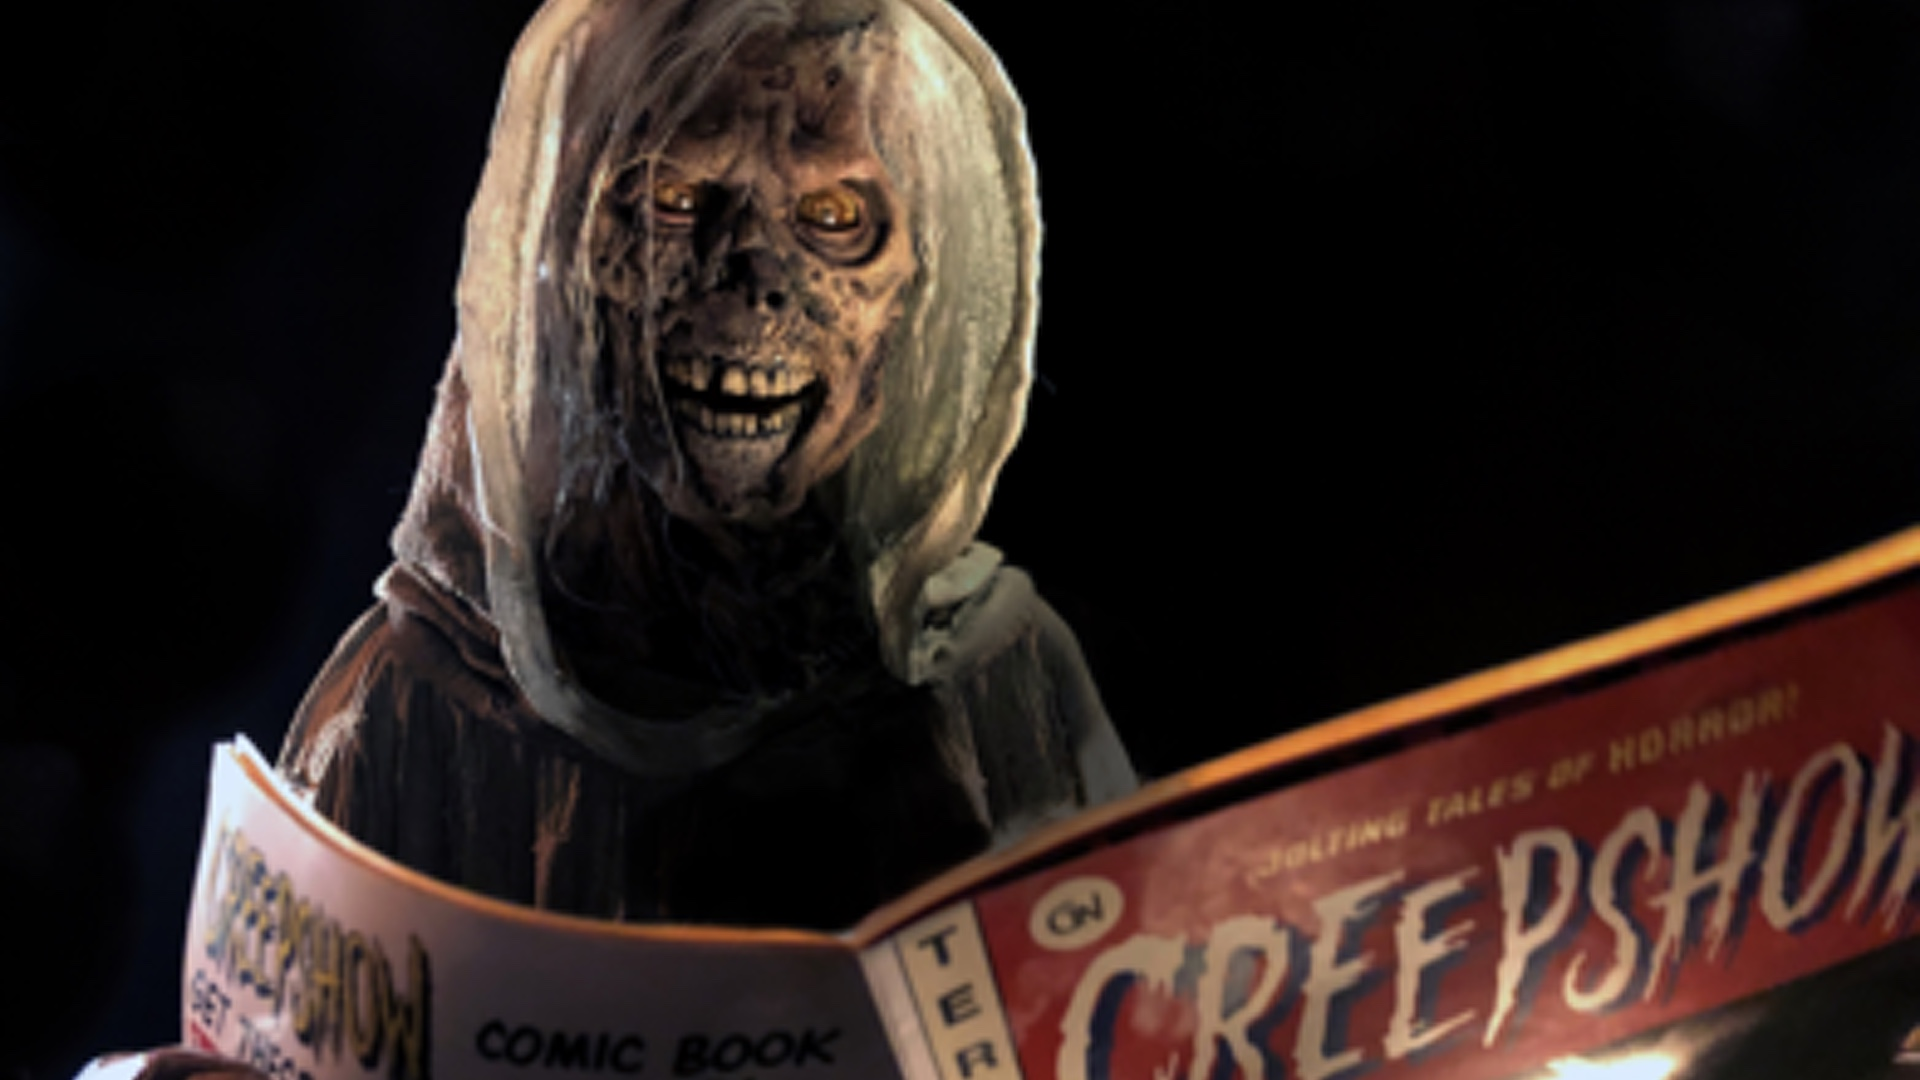 [News] CREEPSHOW Announces New Casting